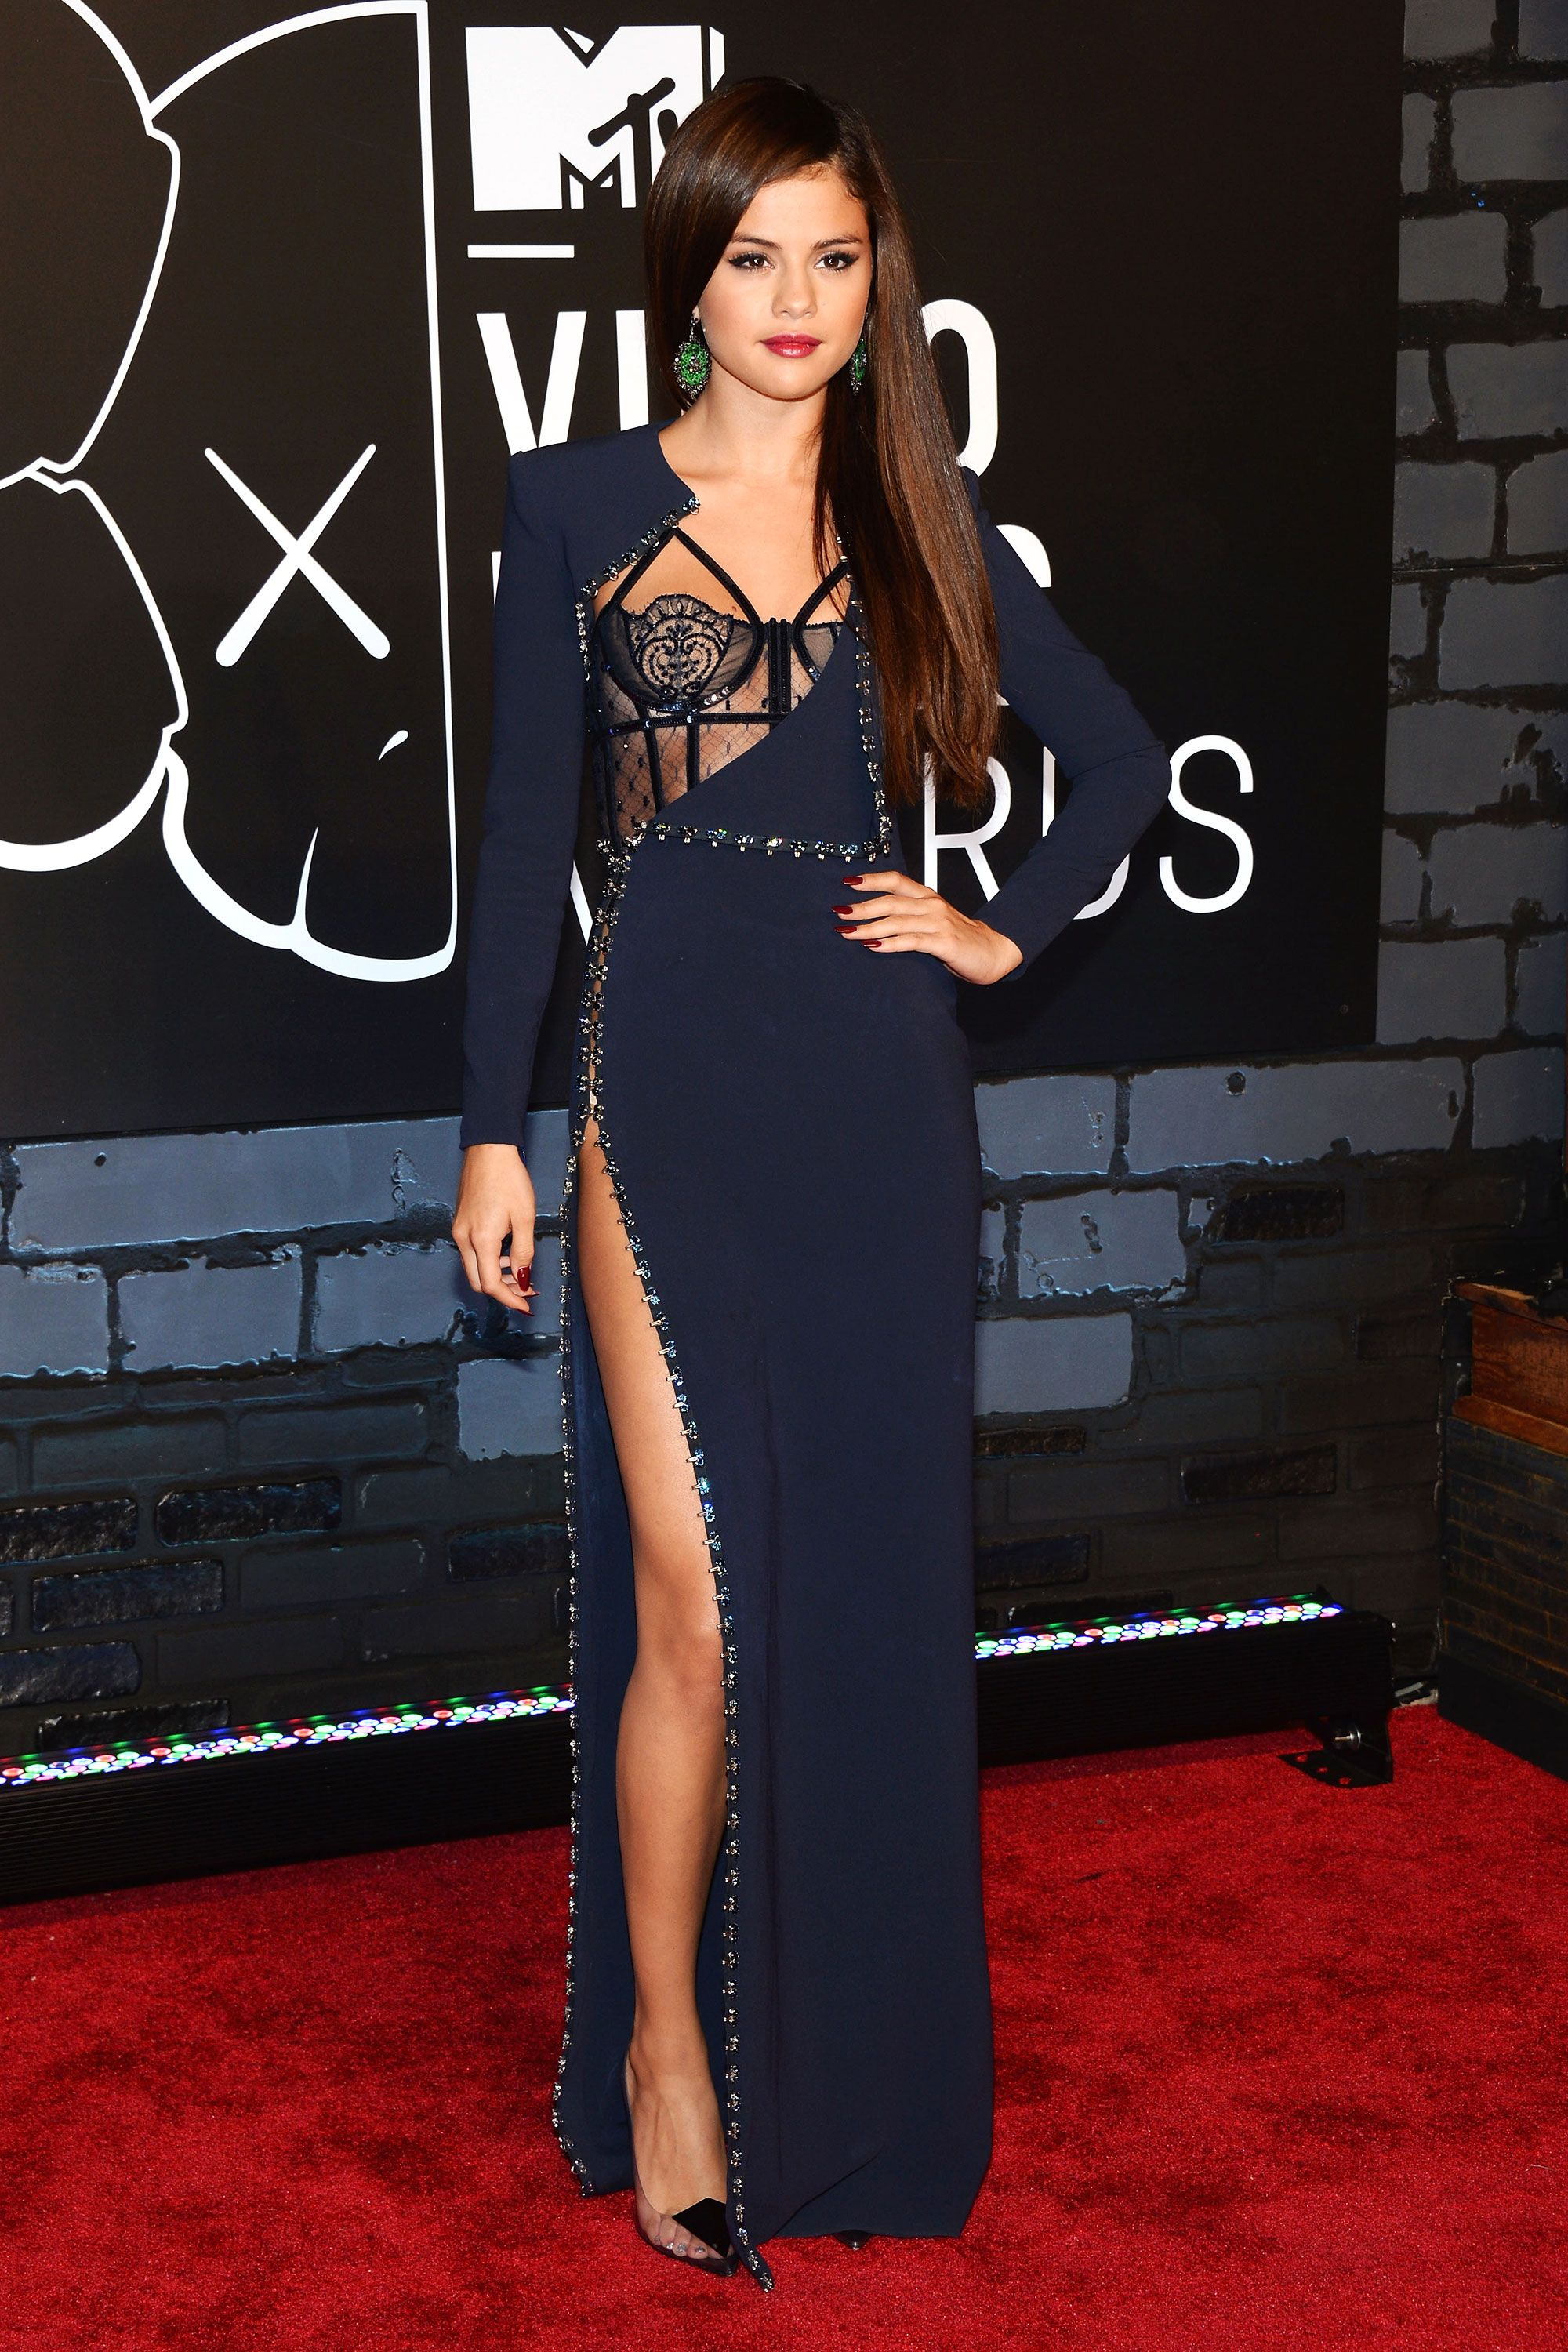 Selena Gomez wearing Atelier Versace at the MTV Music Awards in 2013. 4ac47c440492